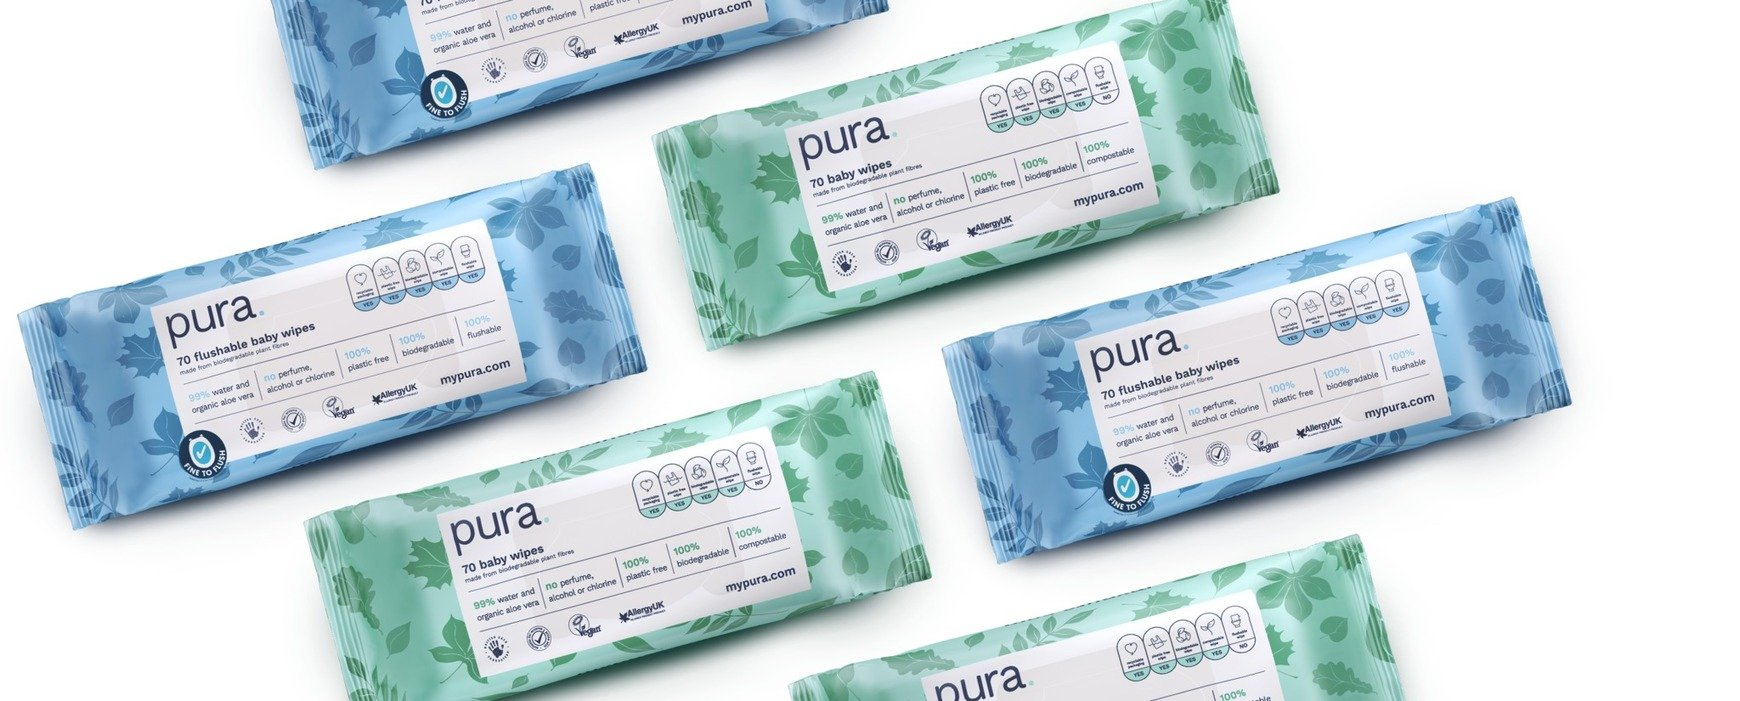 , Pura | Make a Change: Sustainable Nappies and Baby Wipes, The Circular Economy, The Circular Economy